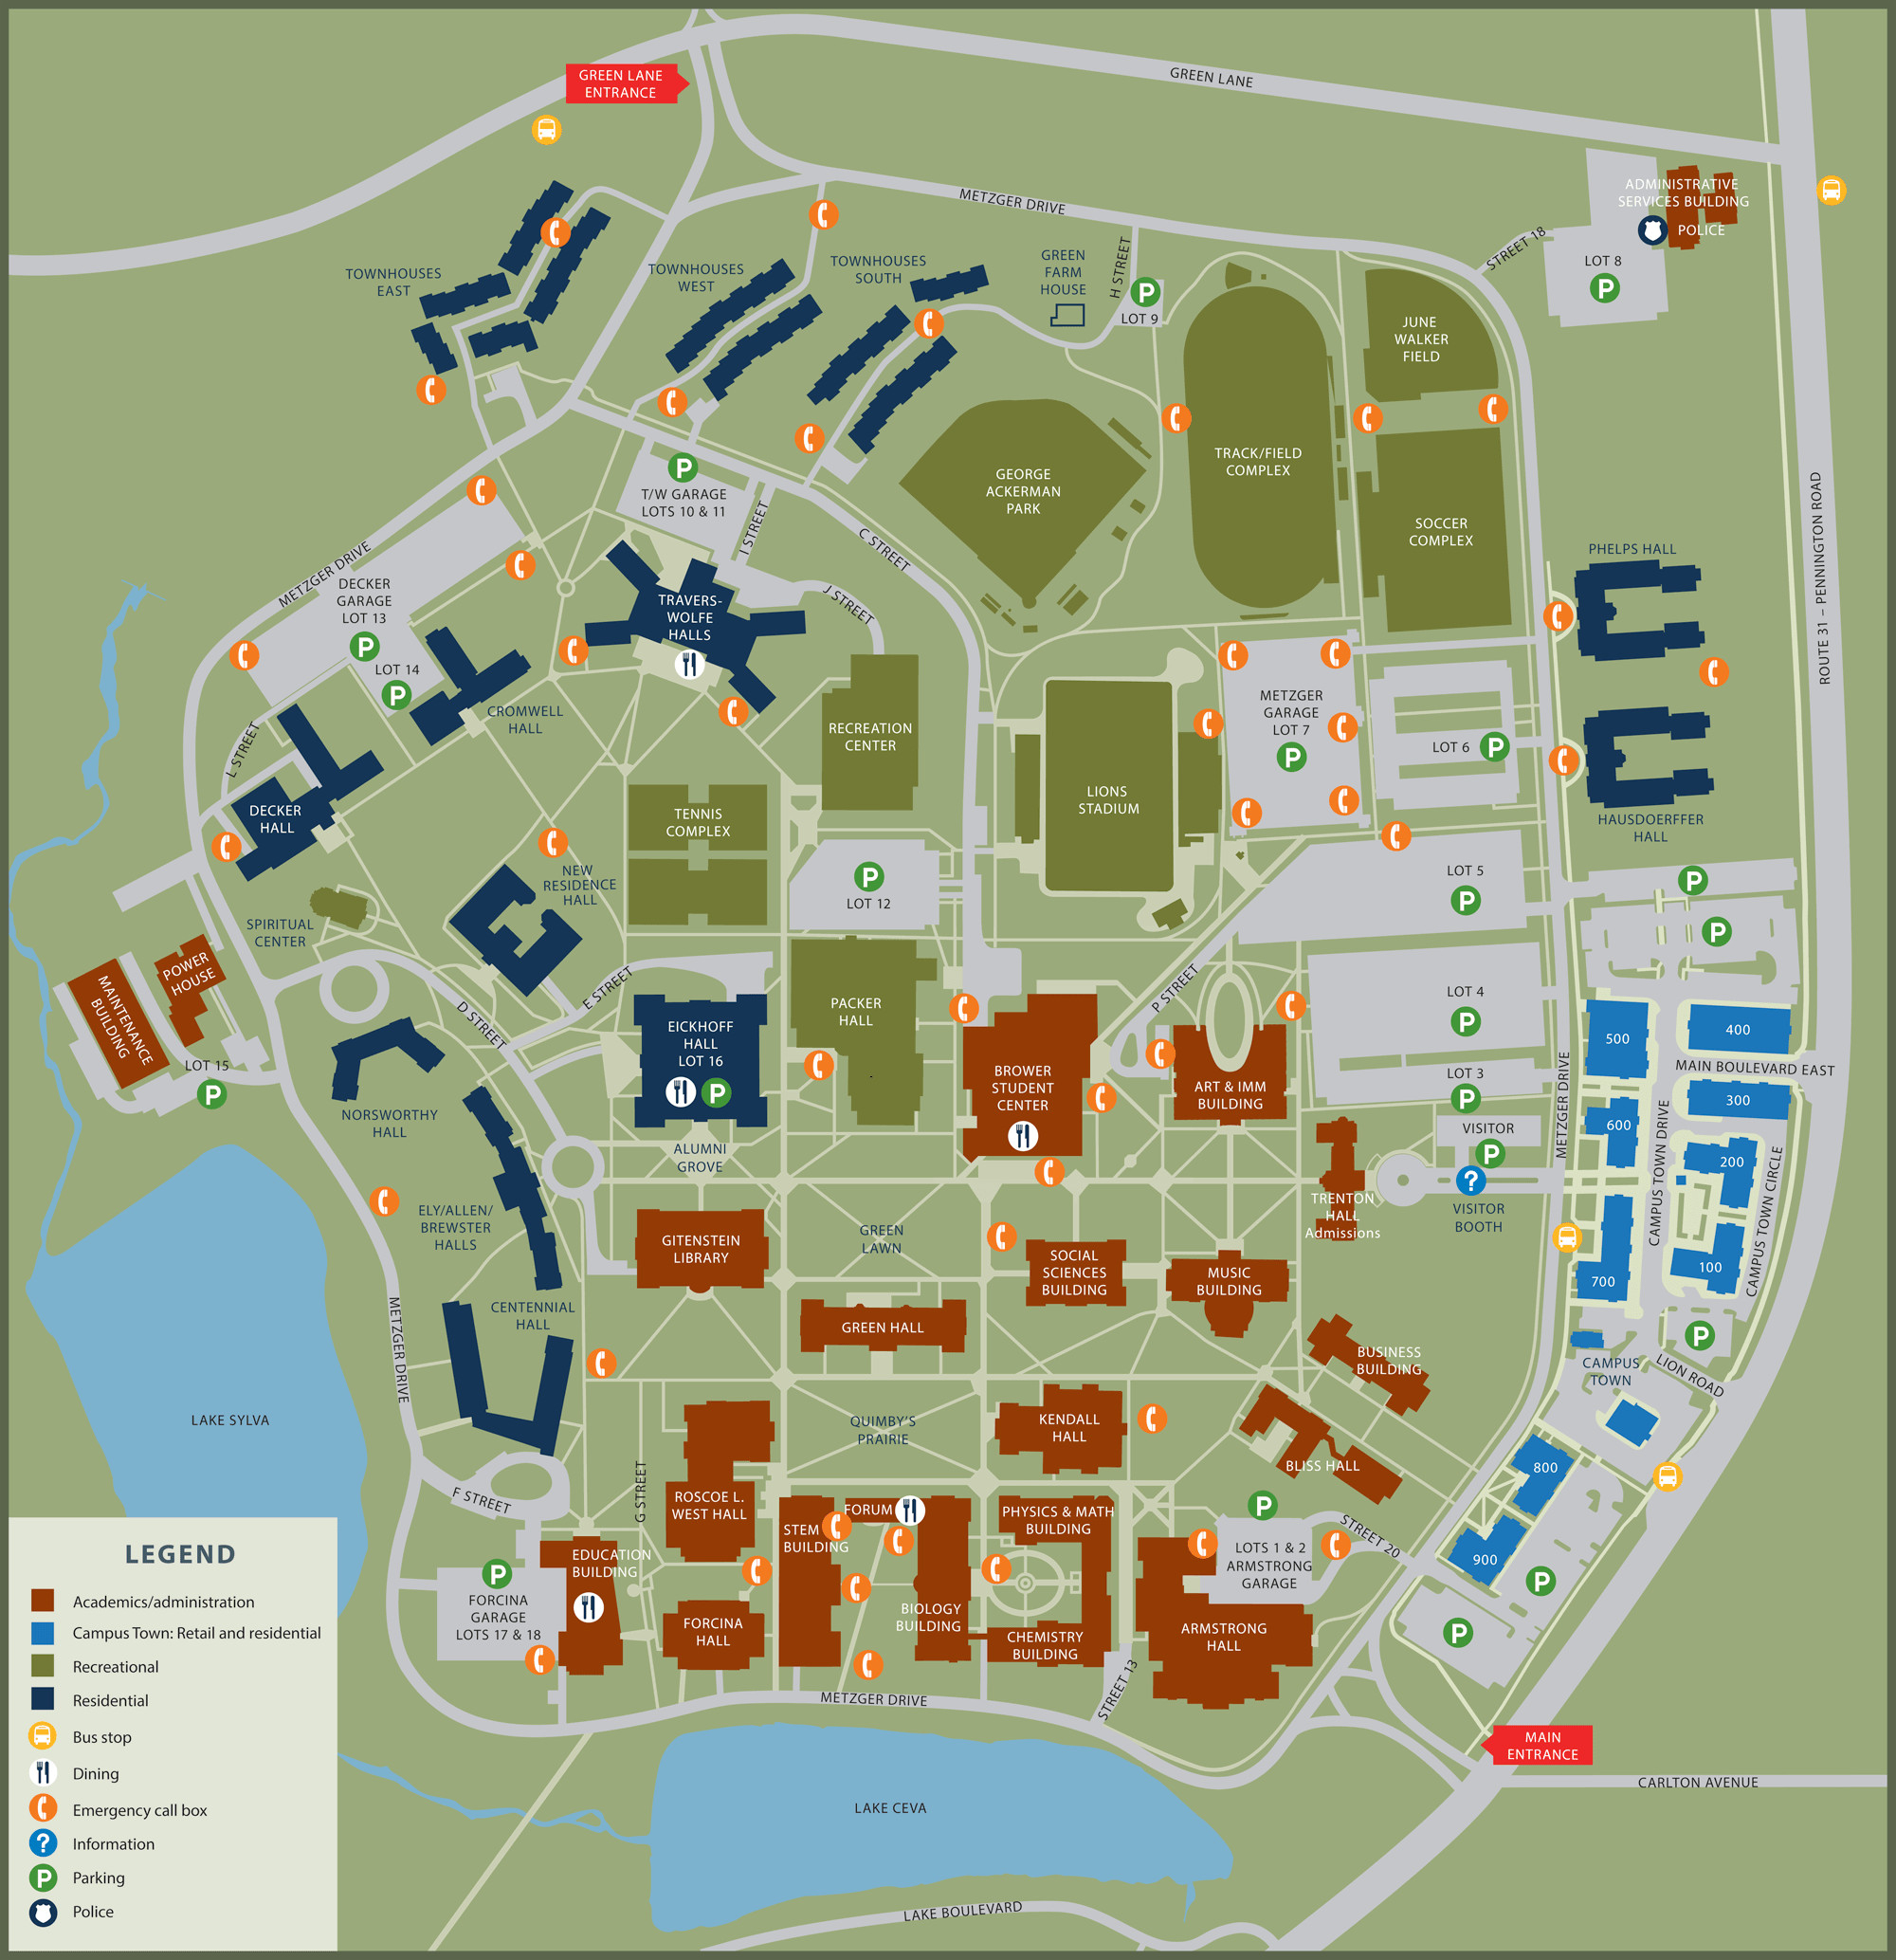 California University Of Pa Campus Map New Map California California - California University Of Pa Campus Map